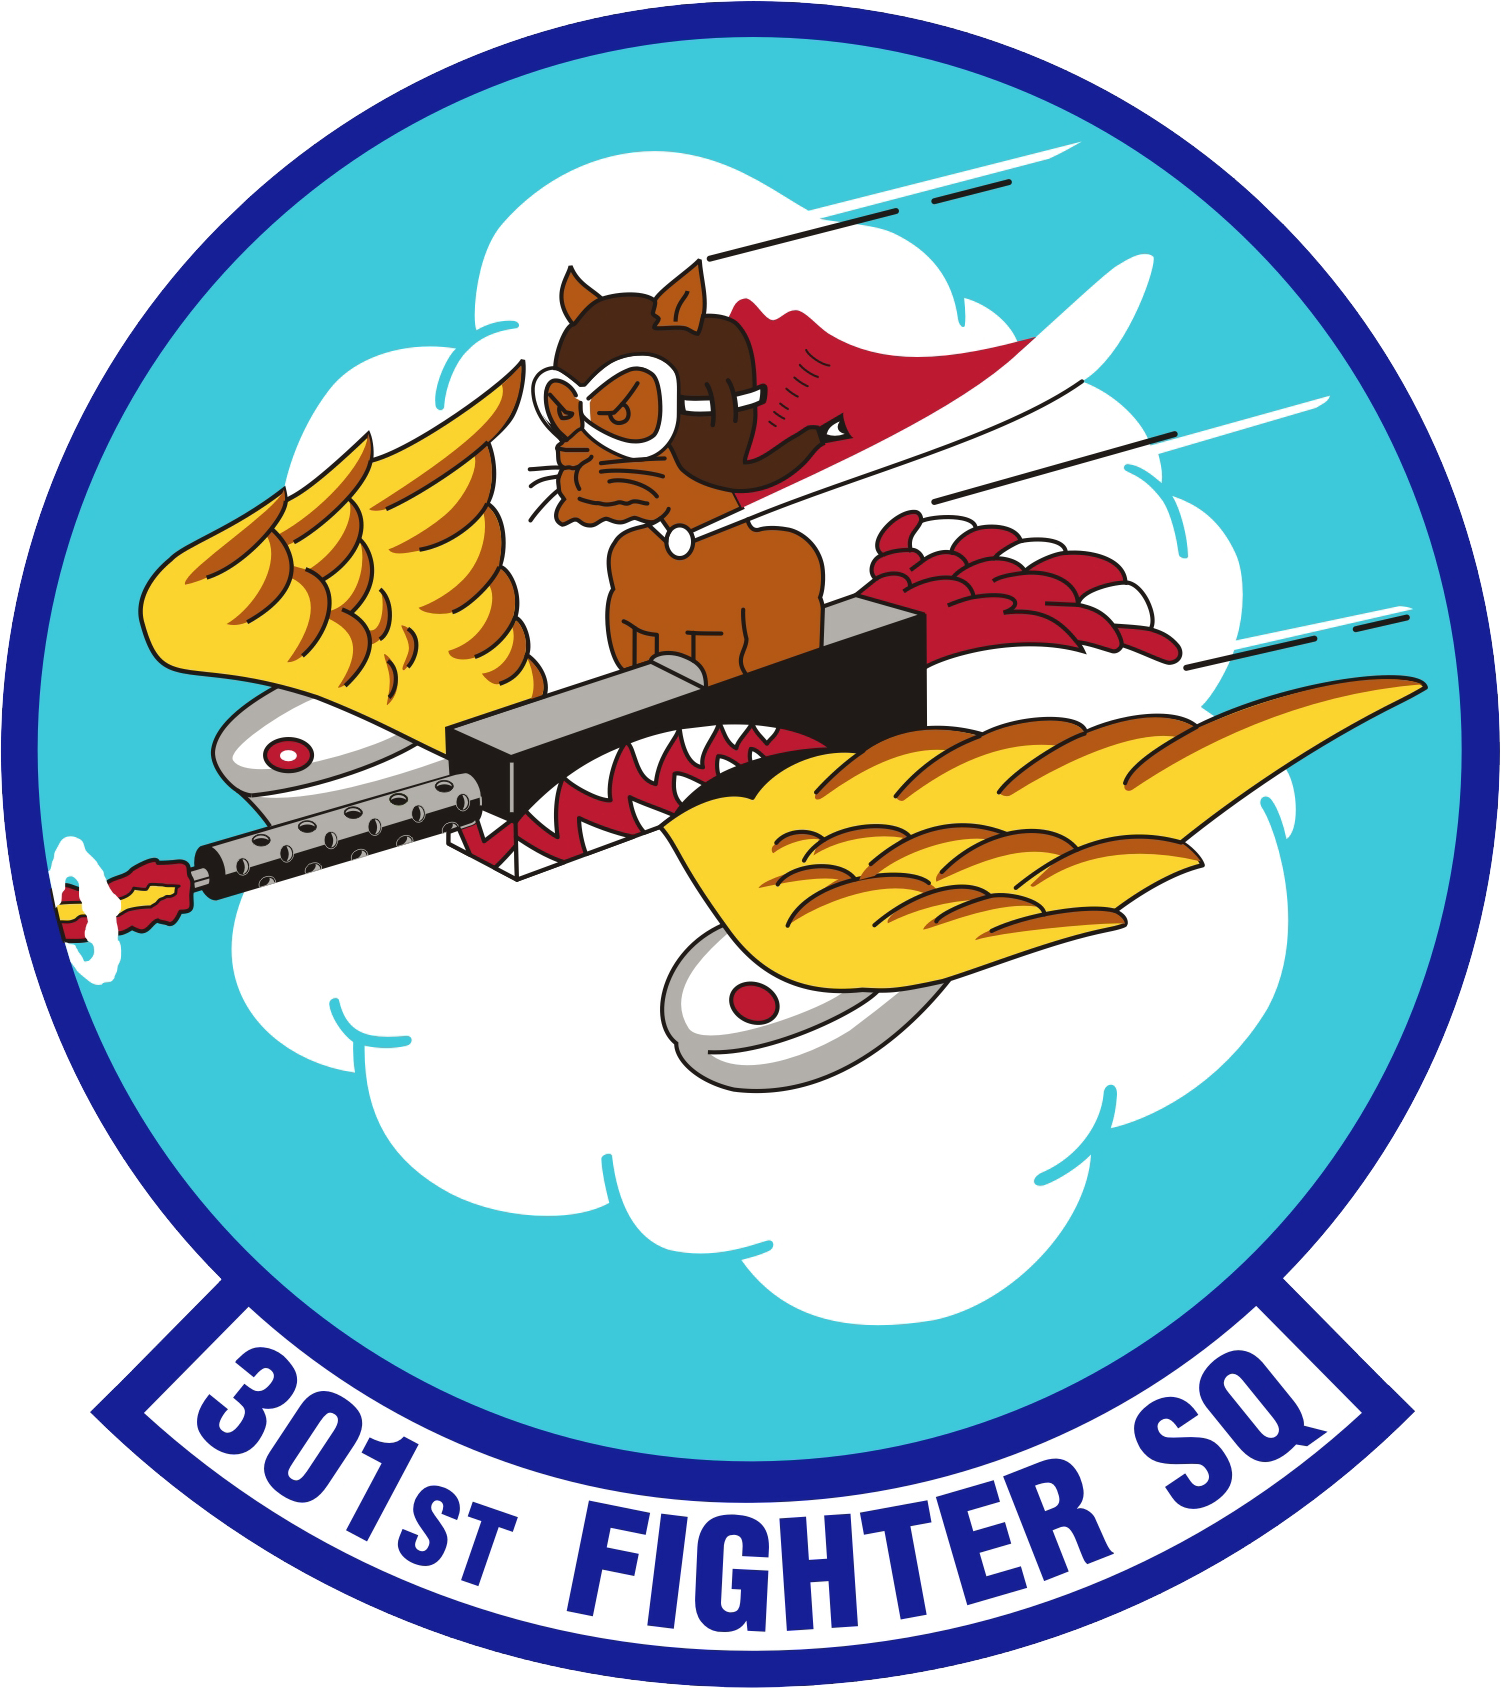 Tuskegee Airmen Png - File:301st Fighter Squadron - AETC - Emblem.png - Wikimedia Commons